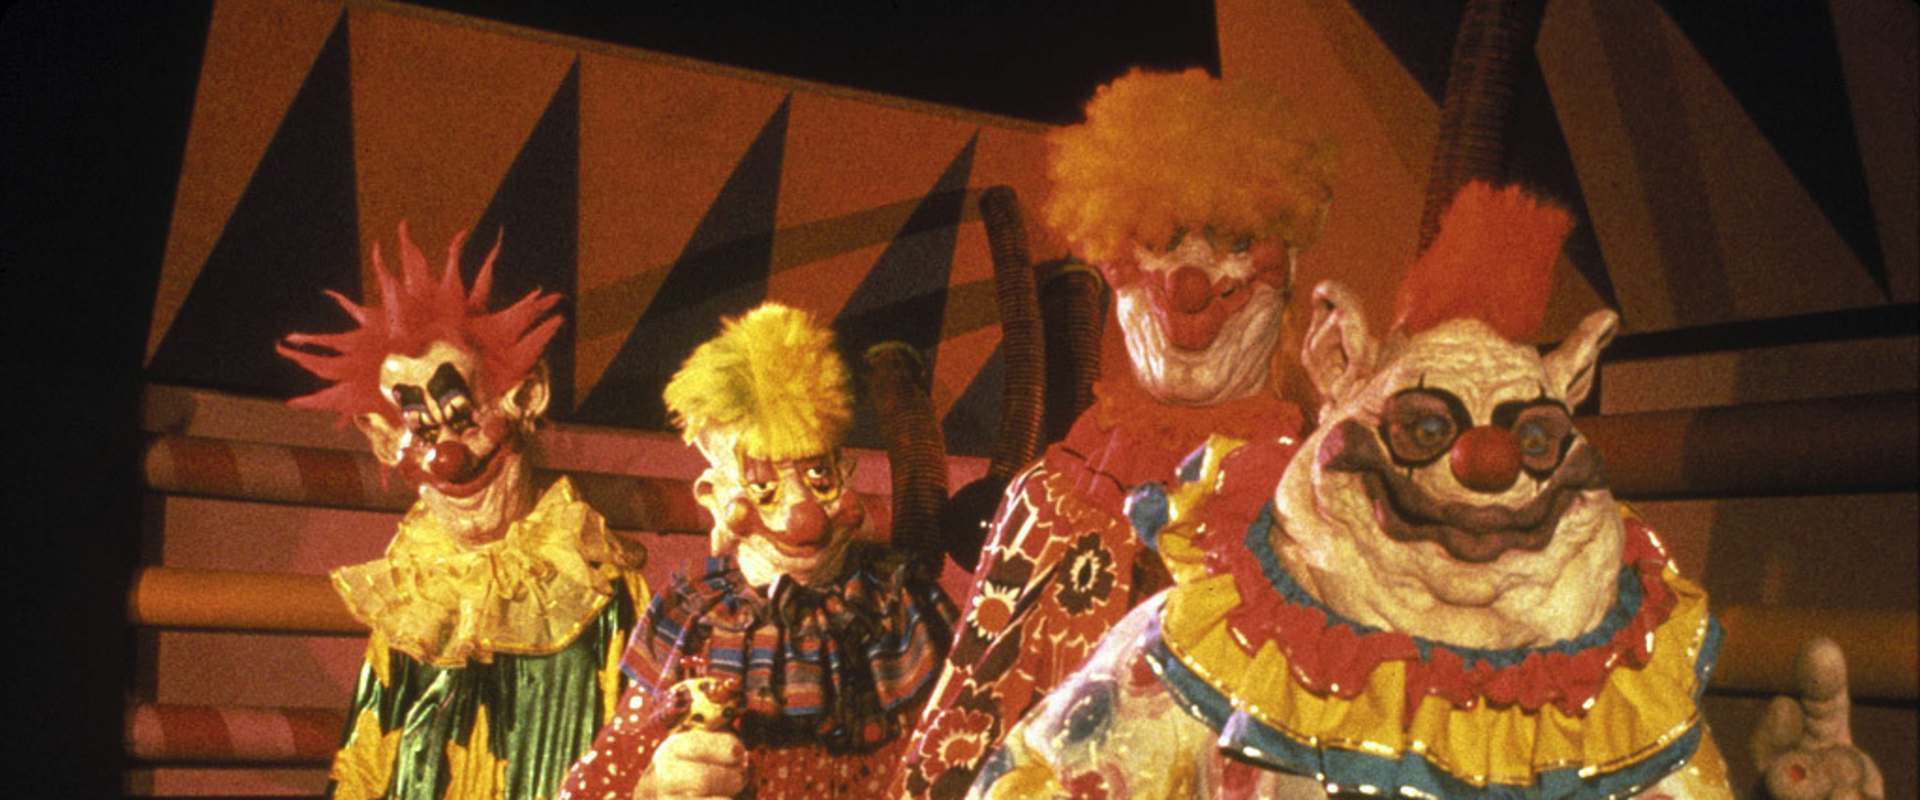 Killer Klowns from Outer Space background 1